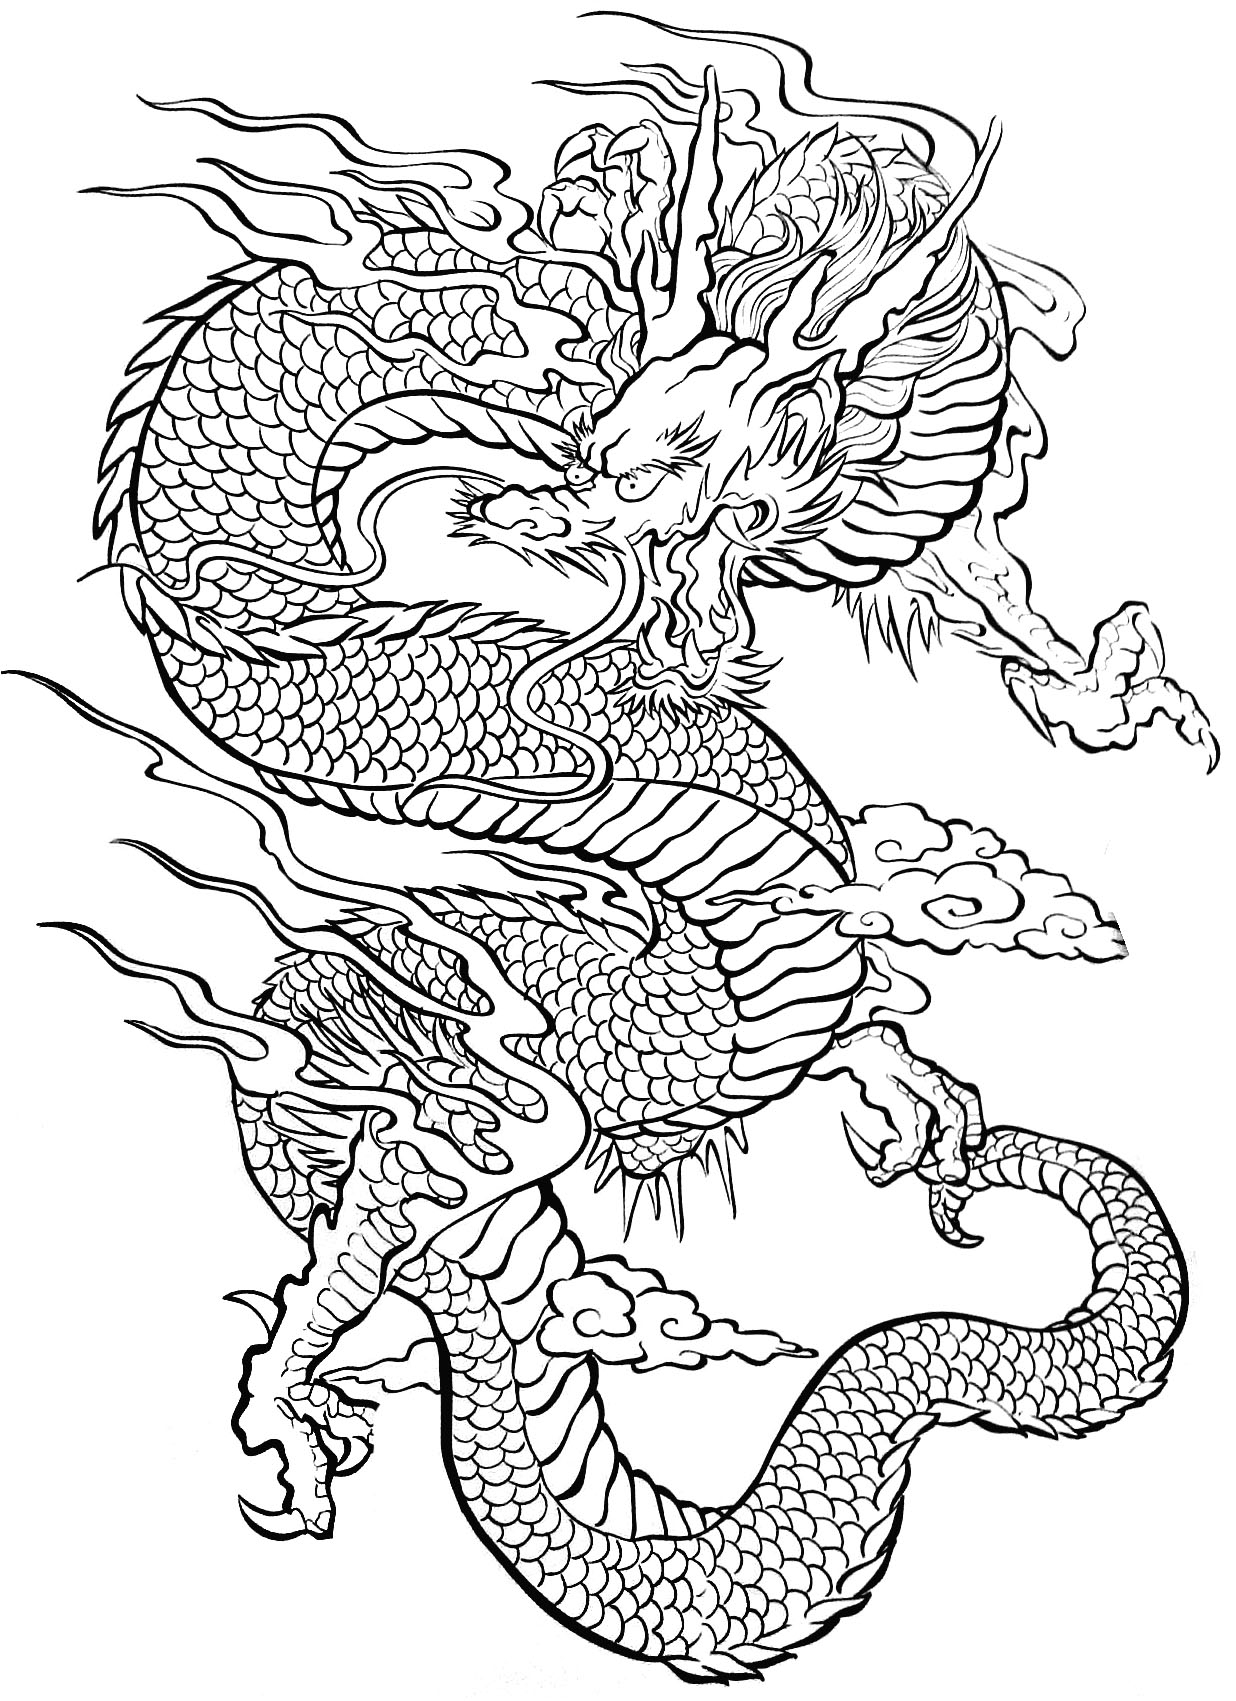 1236x1701 Cross Tattoo Coloring Pages To Print Coloring For Kids